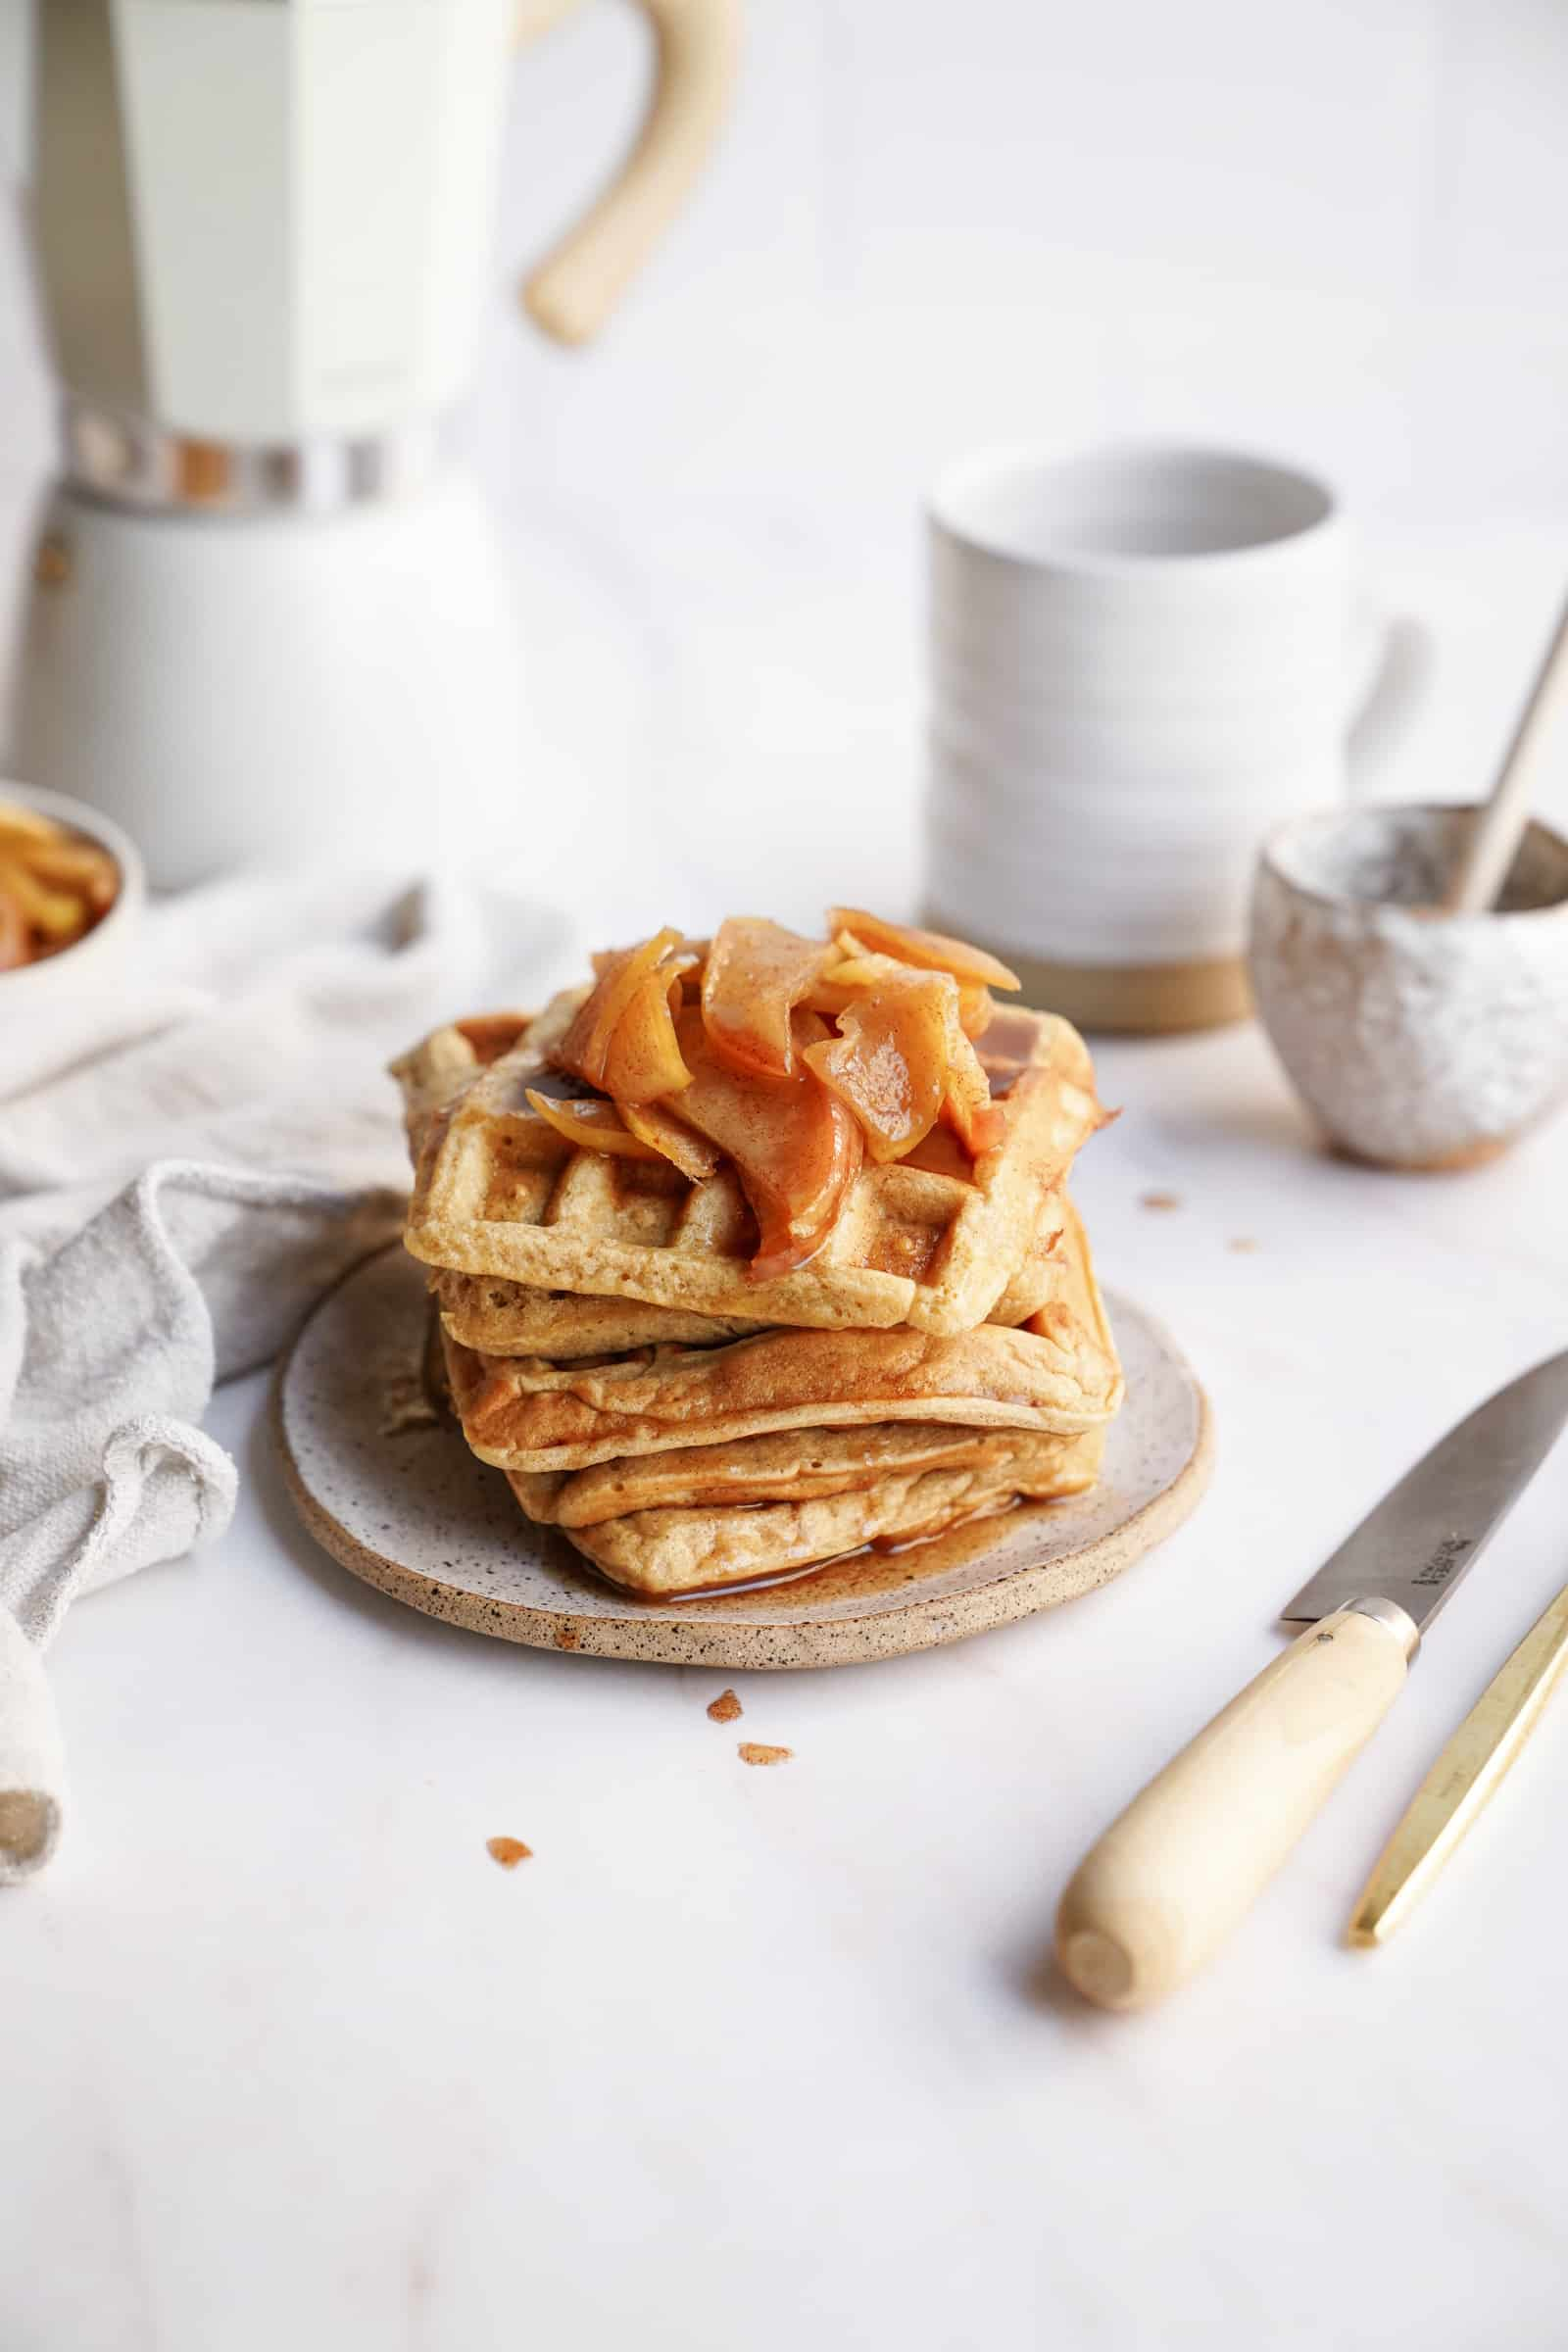 Apple Cinnamon Waffles stacked on a plate